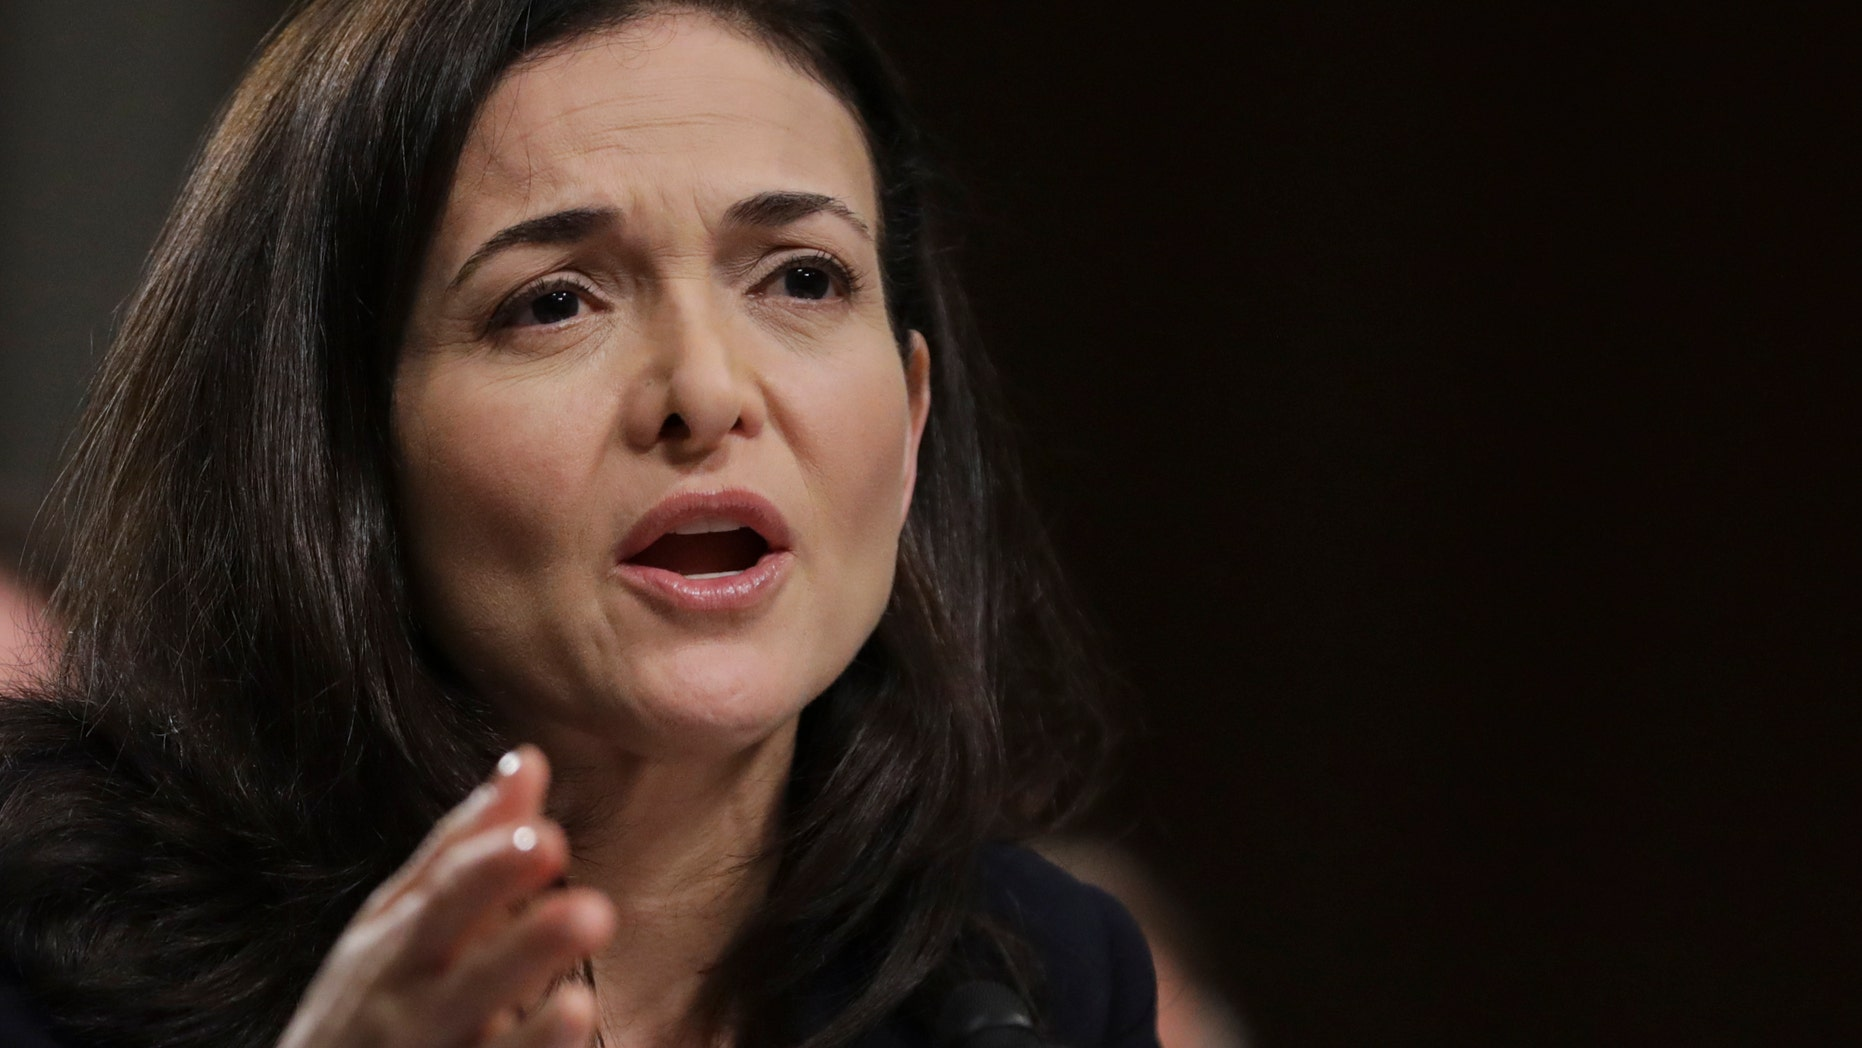 Facebook chief operating officer Sheryl Sandberg is seen in this file photo